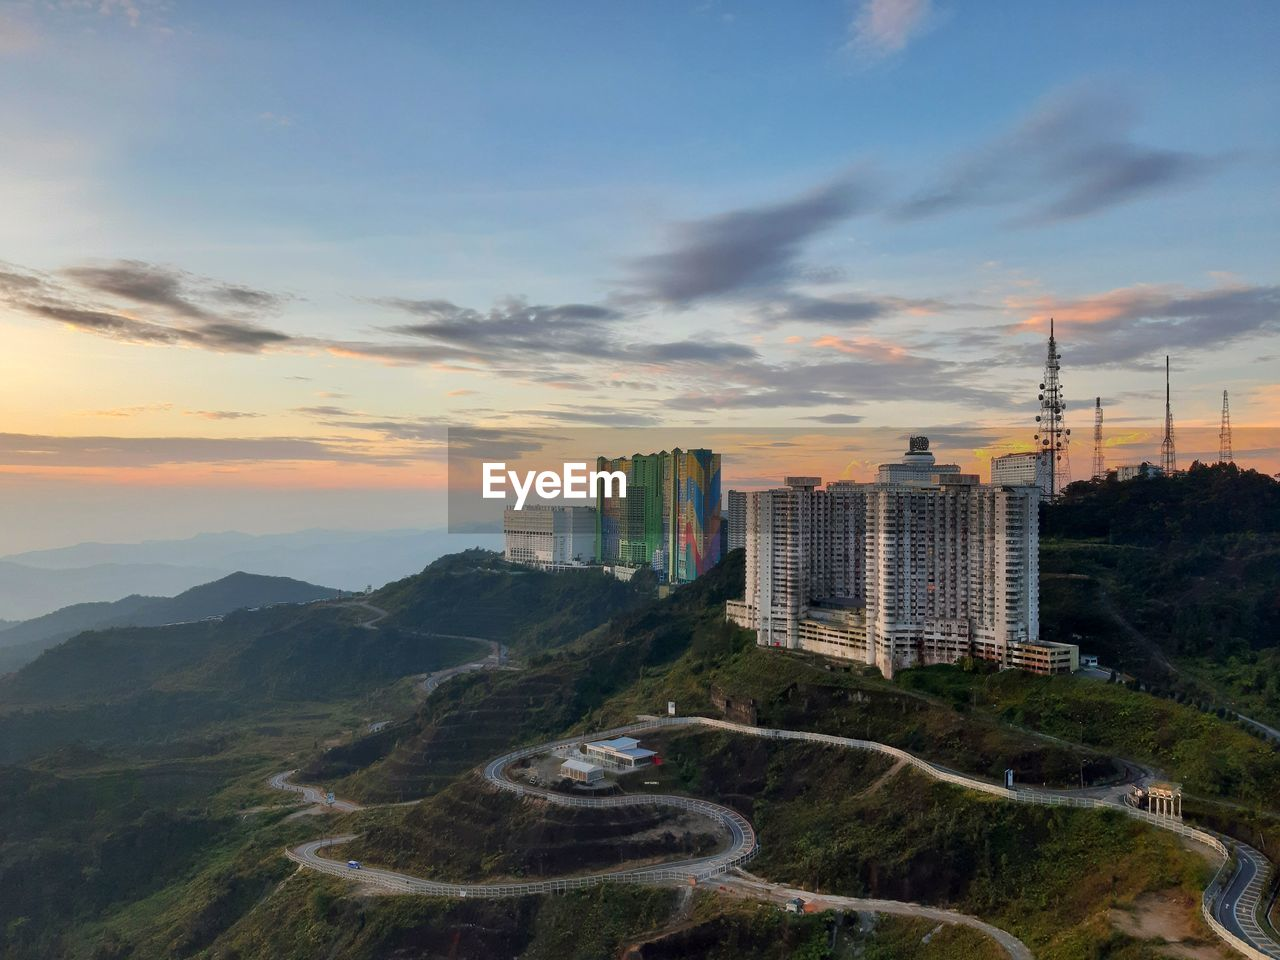 sky, cloud - sky, building exterior, built structure, architecture, city, sunset, building, nature, office building exterior, skyscraper, mountain, no people, landscape, tree, tall - high, modern, high angle view, cityscape, outdoors